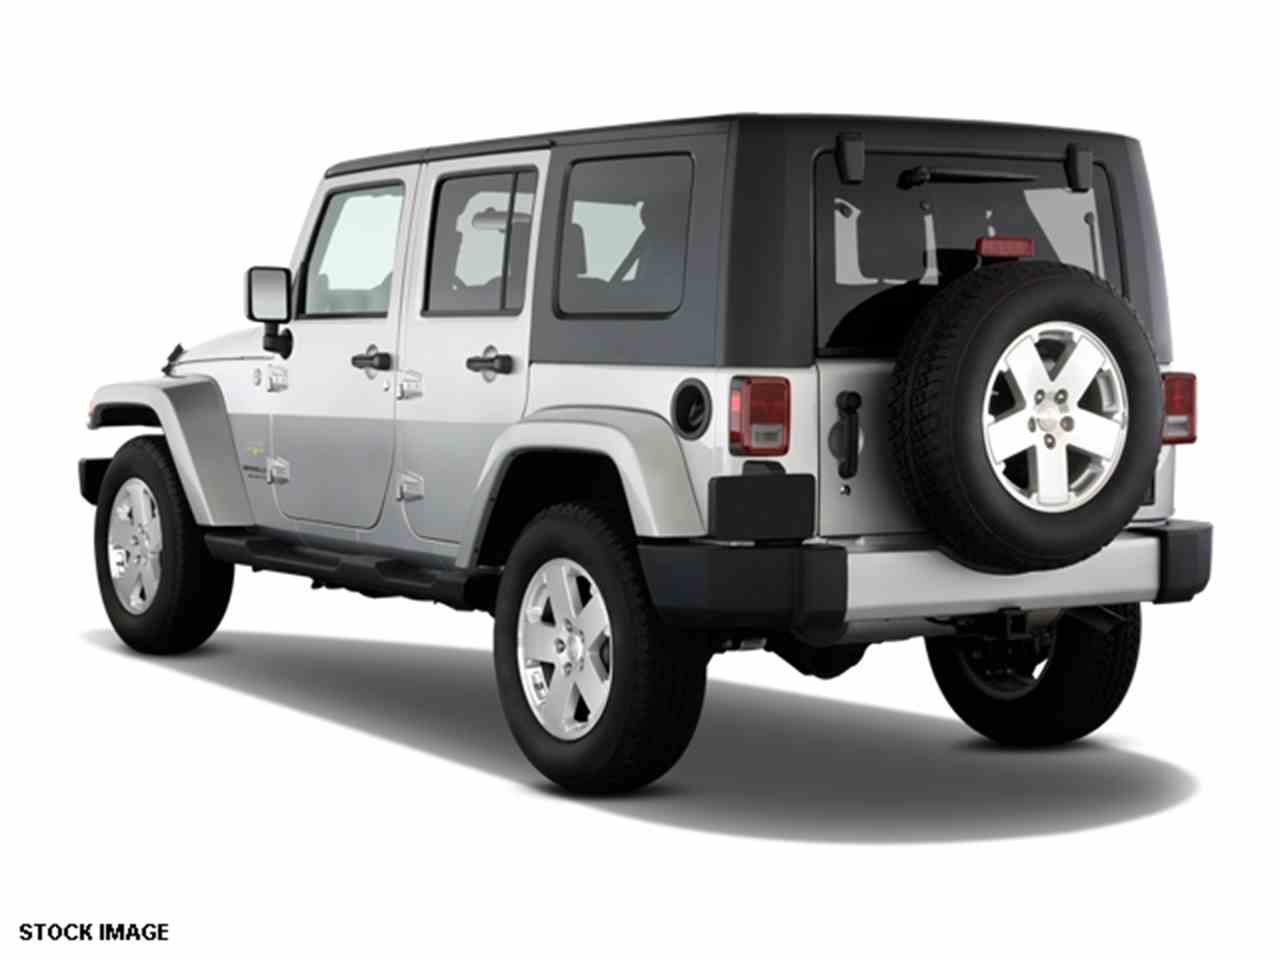 Large Picture of '09 Wrangler located in Loveland Ohio - $17,000.00 Offered by Cincinnati Auto Wholesale - LWMR